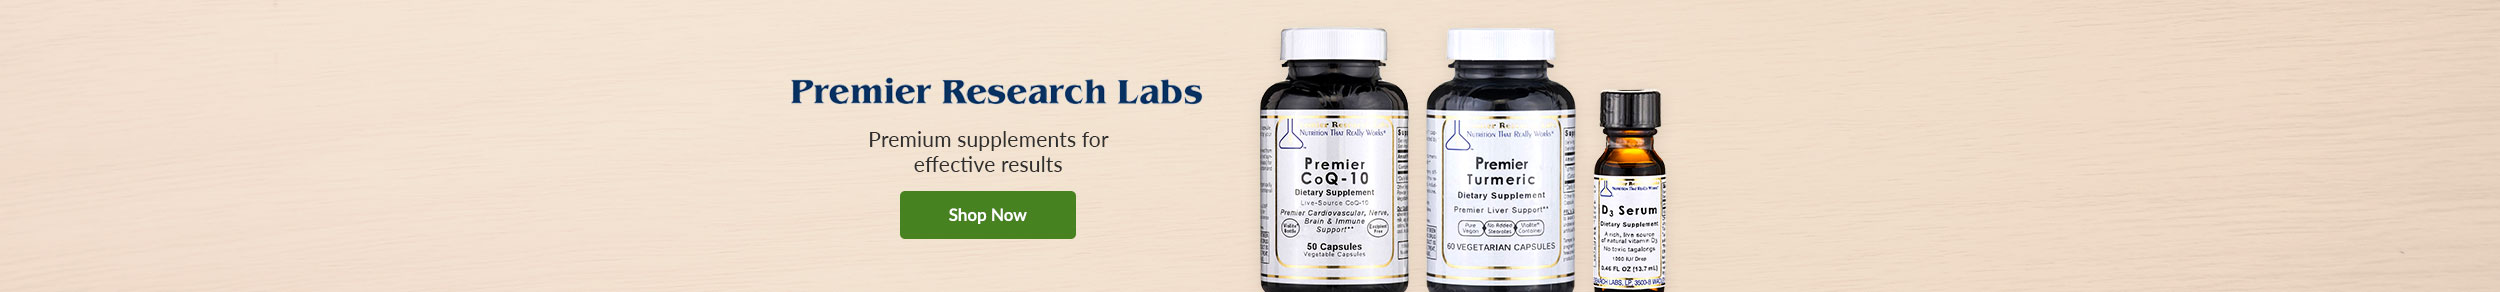 Premier Research Labs - Premium supplements for effective results